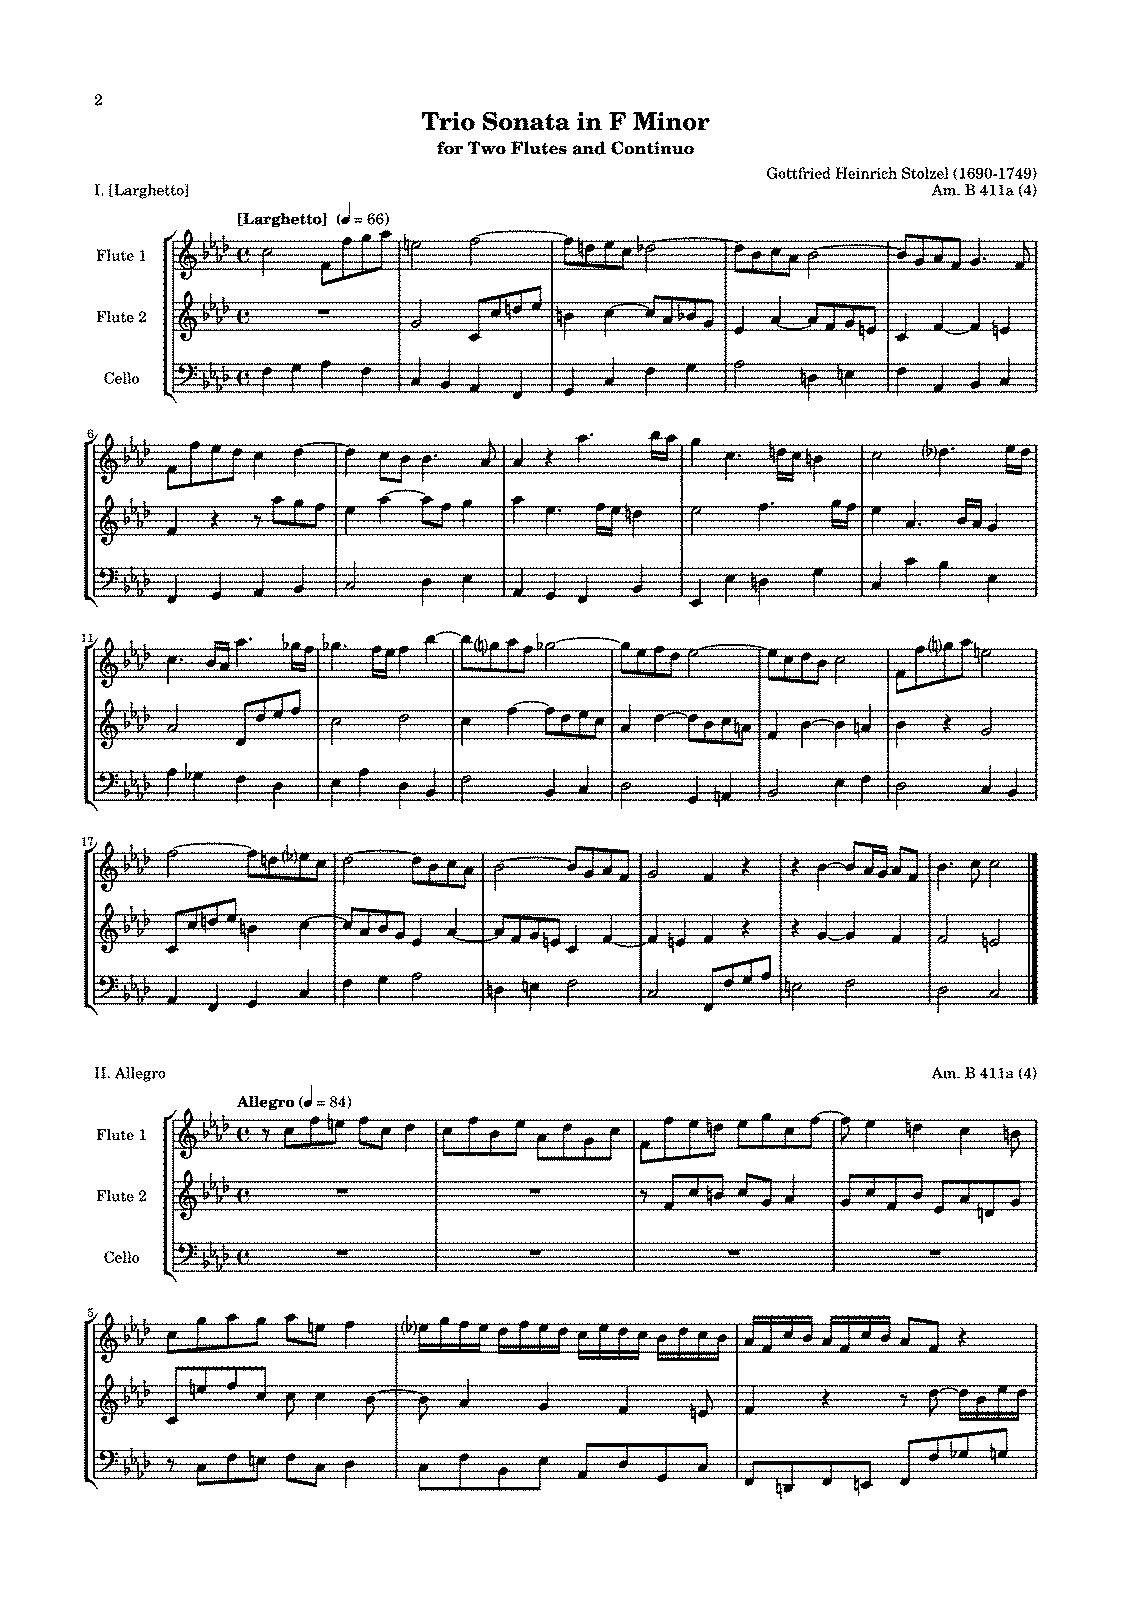 PMLP638243-Stolzel Trio Sonata in F Minor - Score.pdf